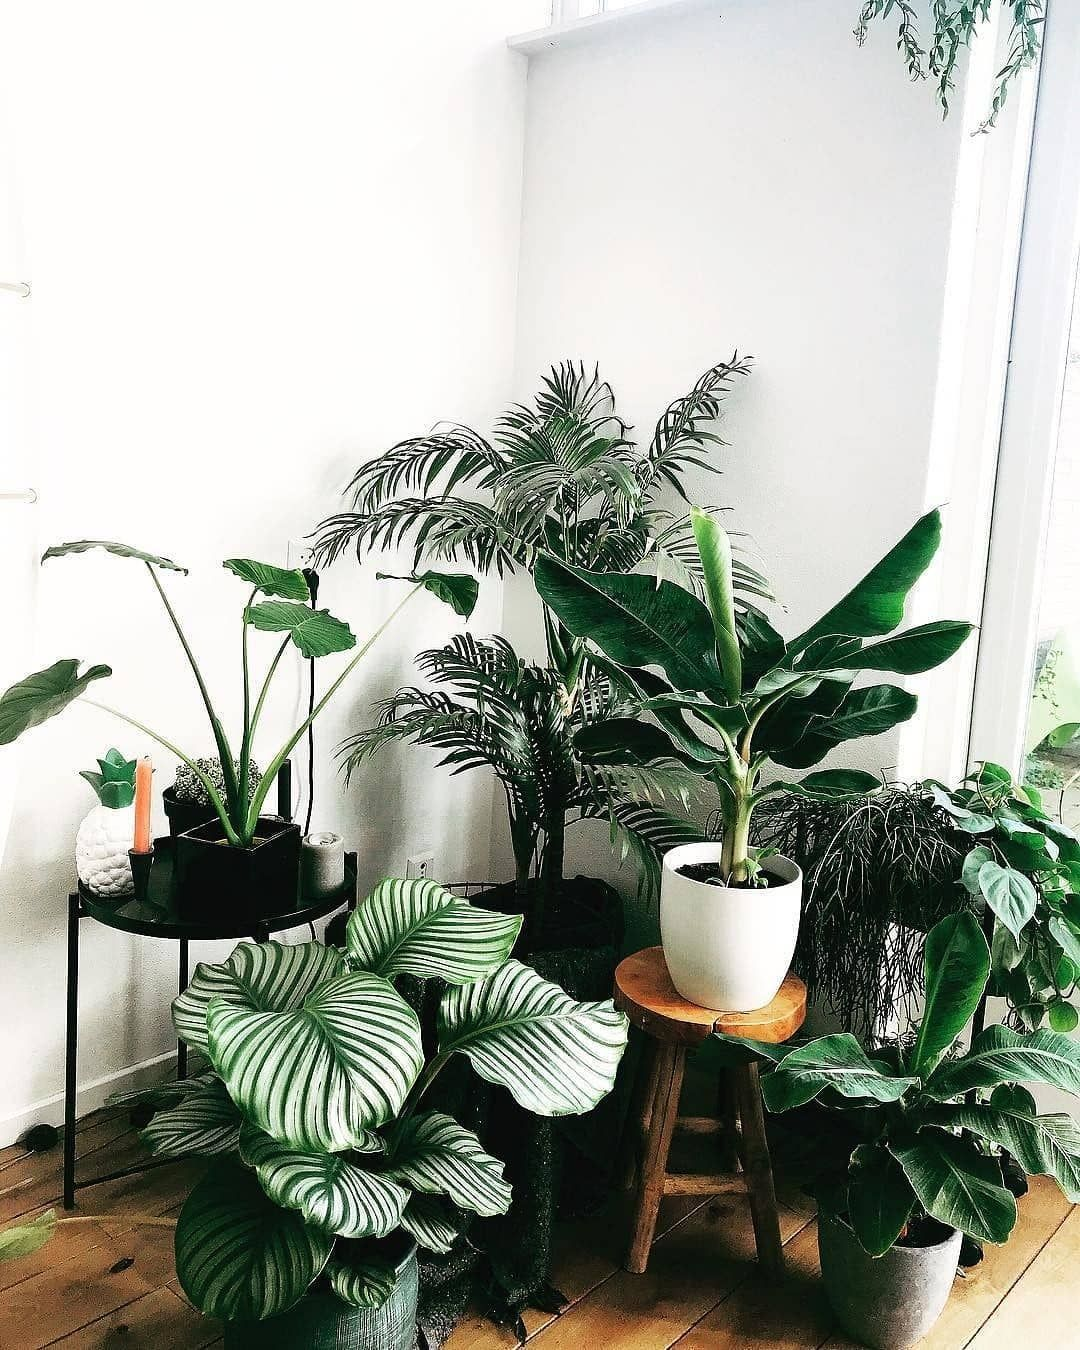 Olivra Homedecor On Instagram Lovely Little Plant Corner In The Living Room Tag Someone With A Gorgeous House Plants Decor Plant Decor Small Indoor Plants